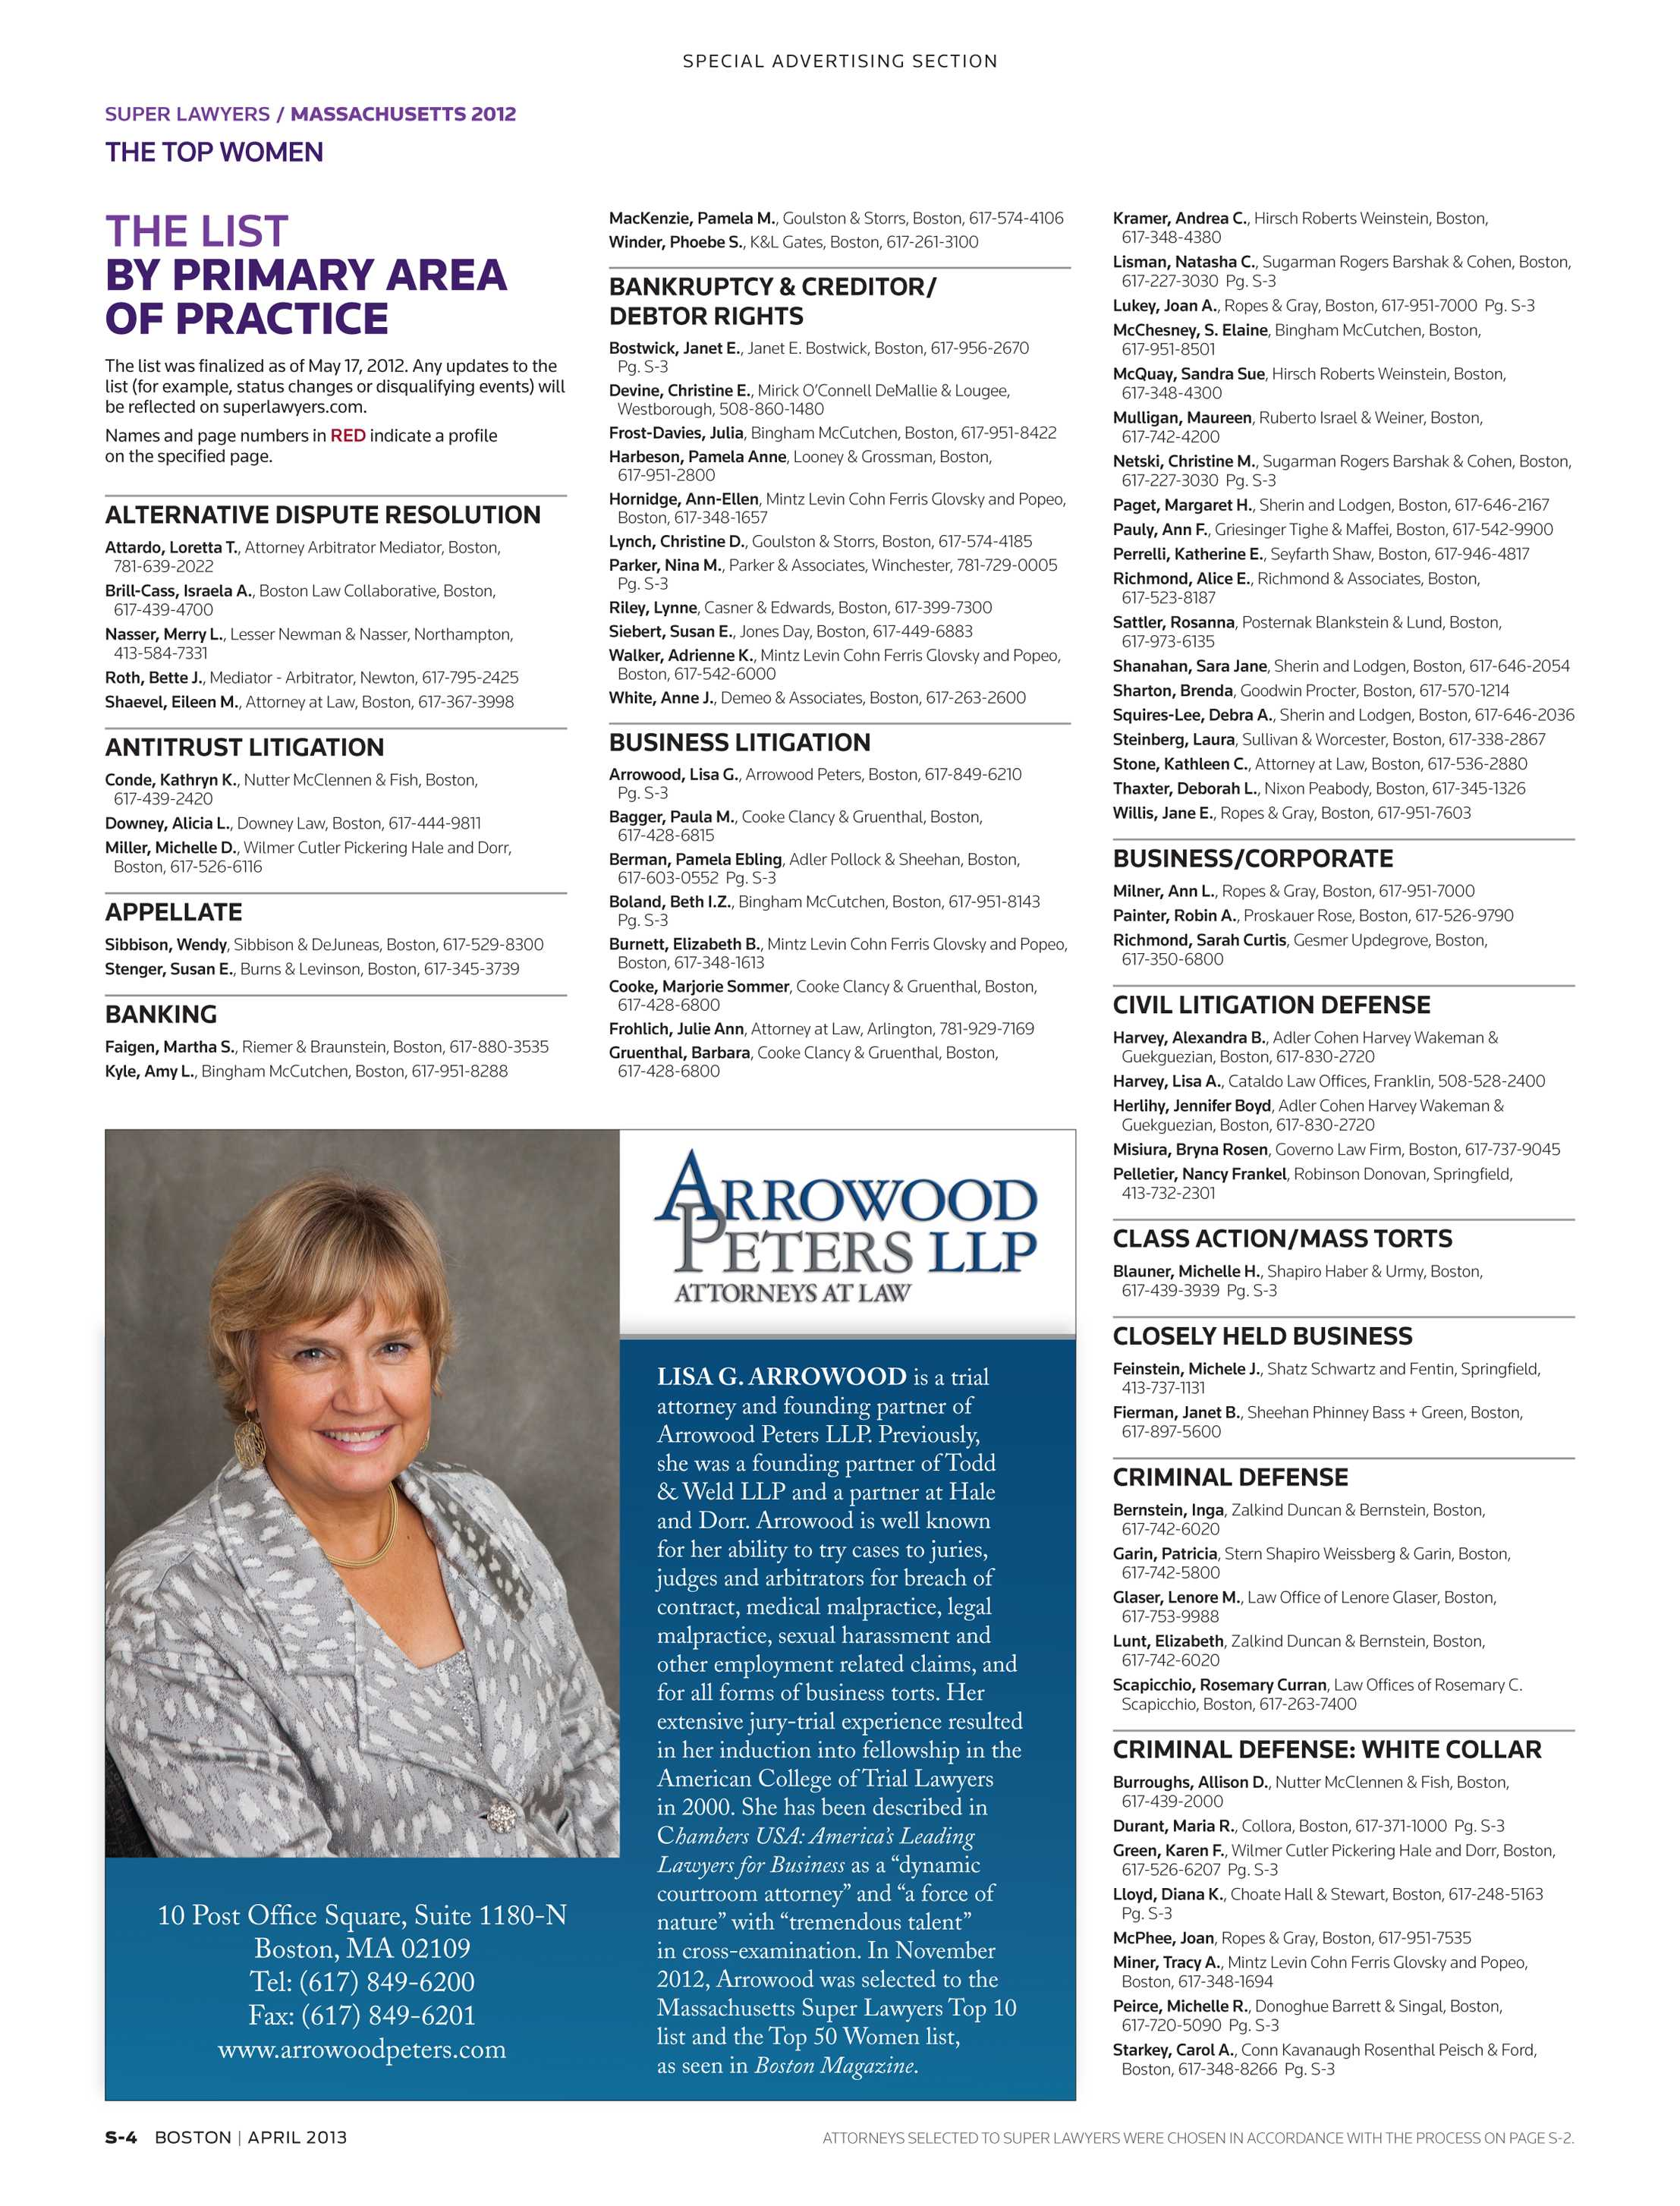 From Kotin Crabtree Strong Llp Fourth >> Super Lawyers The Top Women Attorneys In Massachusetts Page S 4